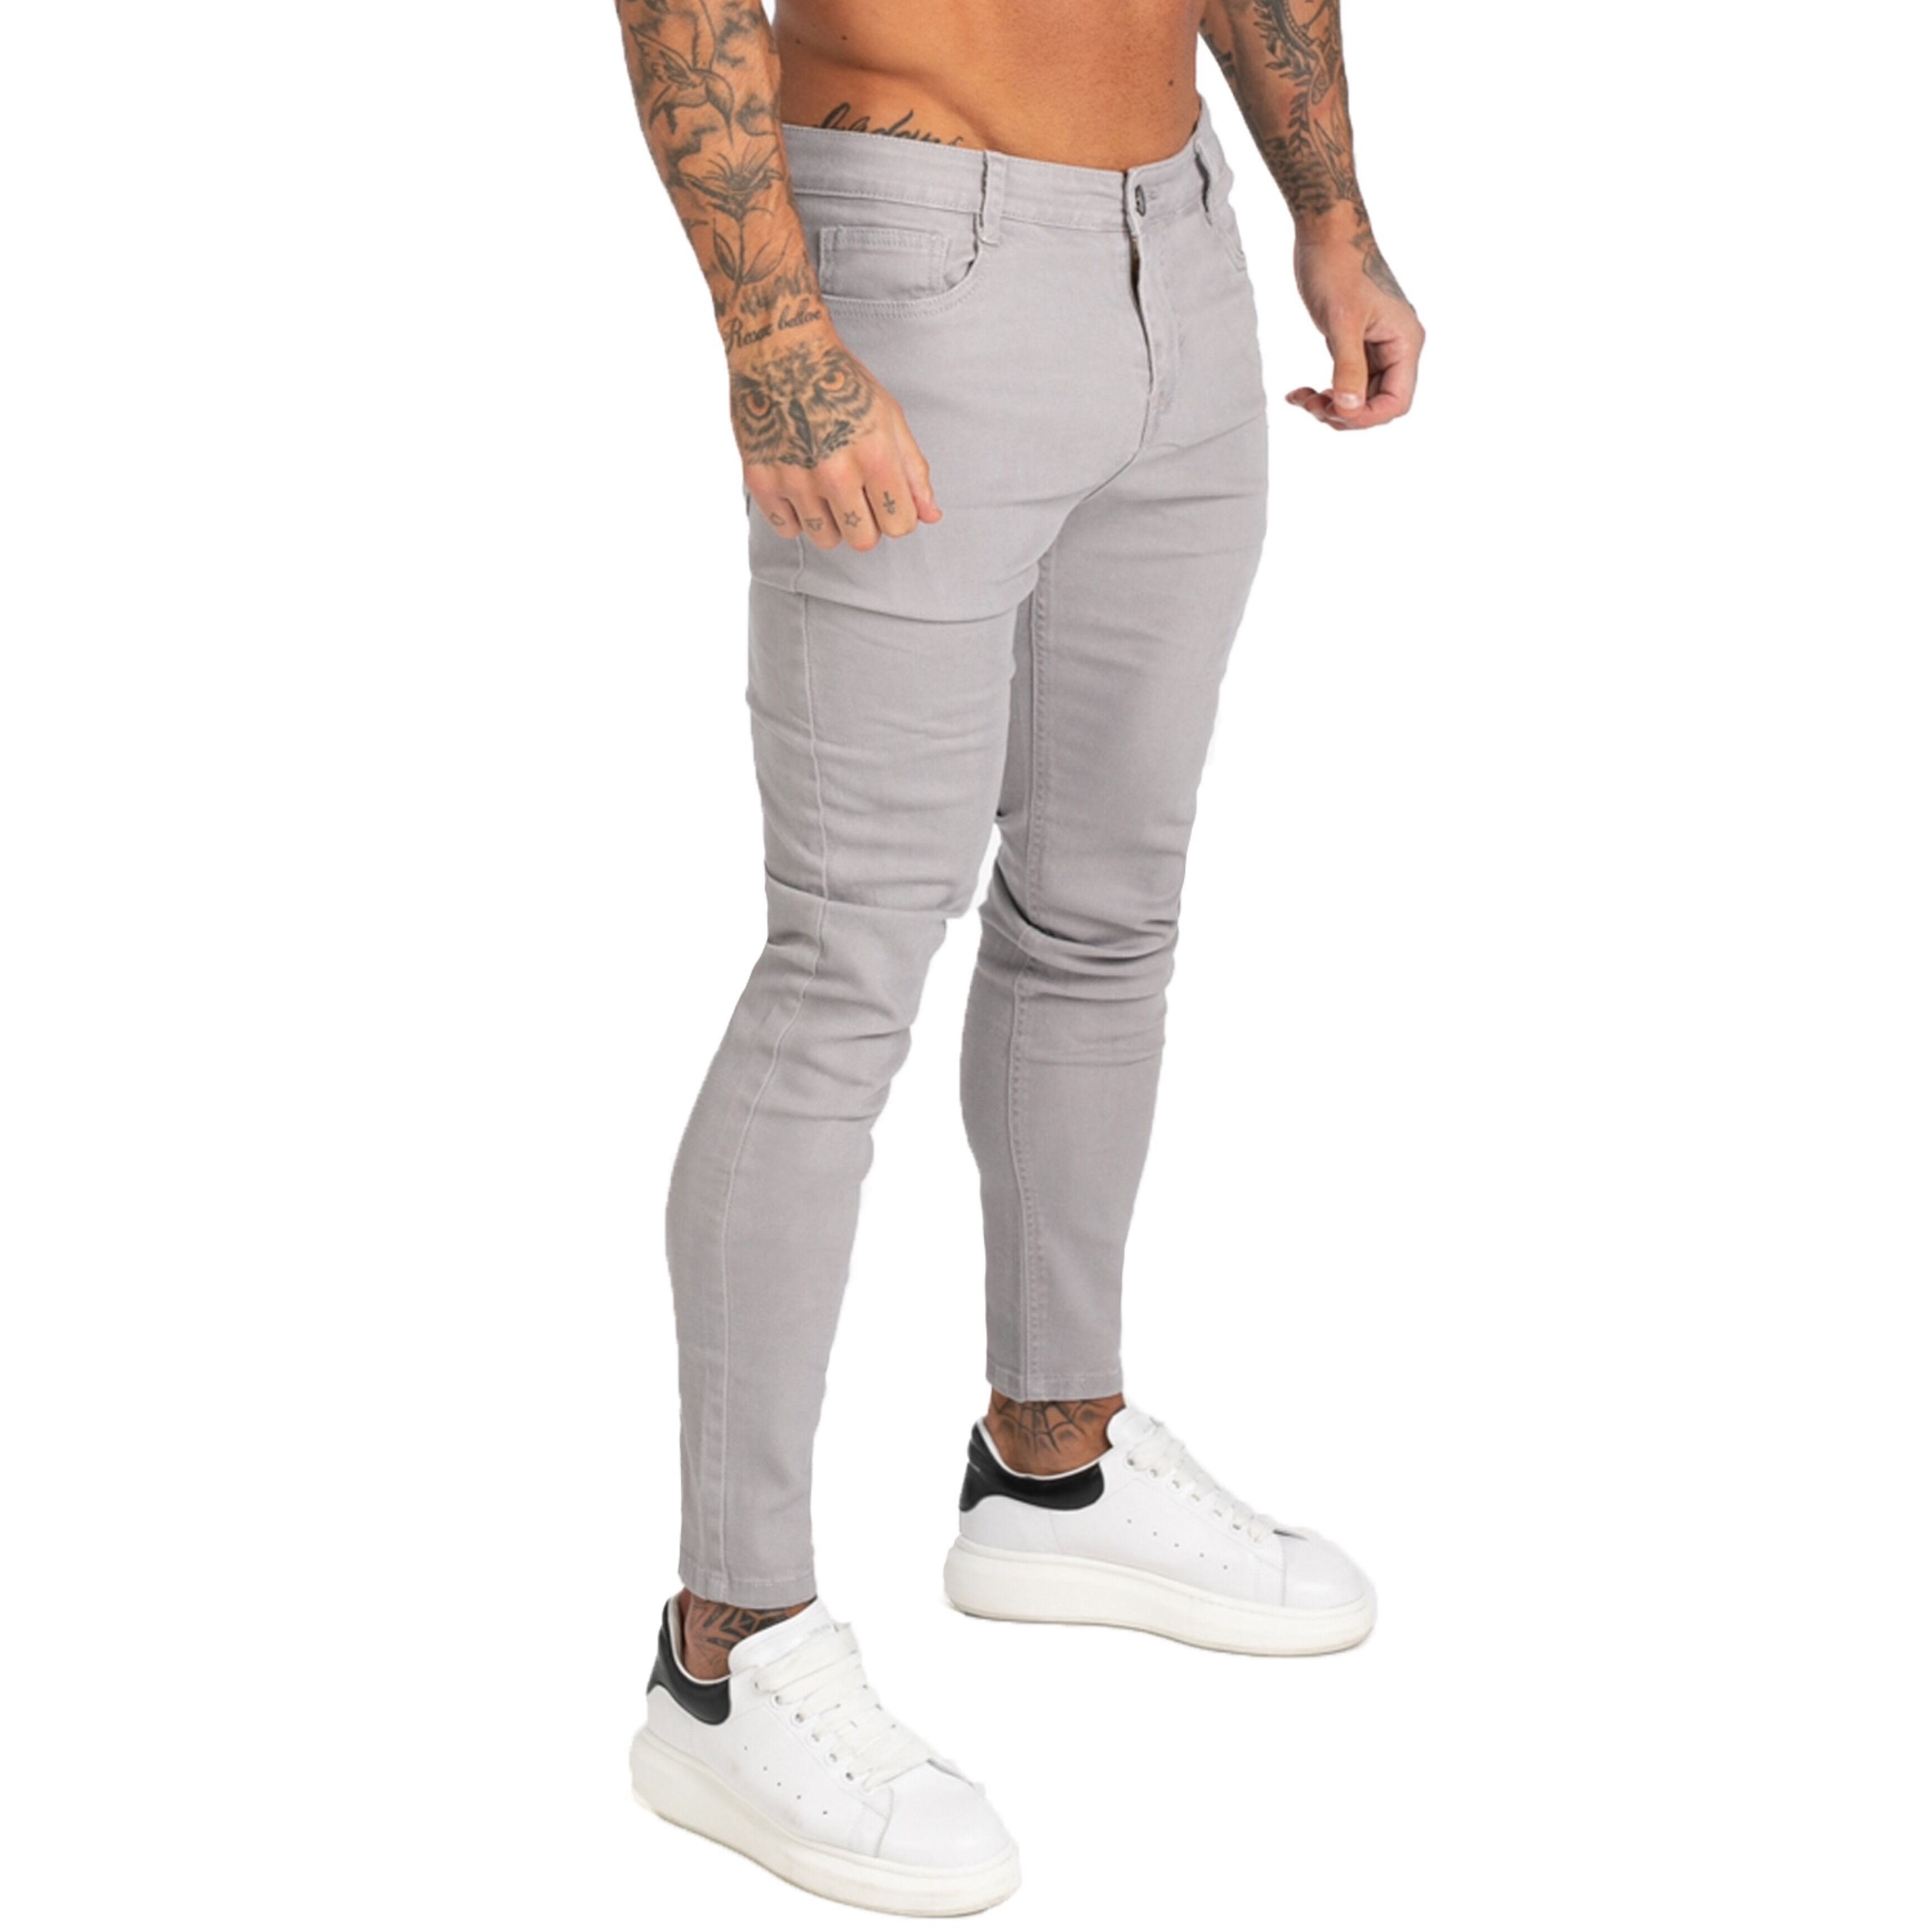 GINGTTO Denim Pants Men Skinny Slim Fit Grey Jeans For Men Hip Hop Ankle Tight Cut Closely To Body Big Size Stretch Zm175